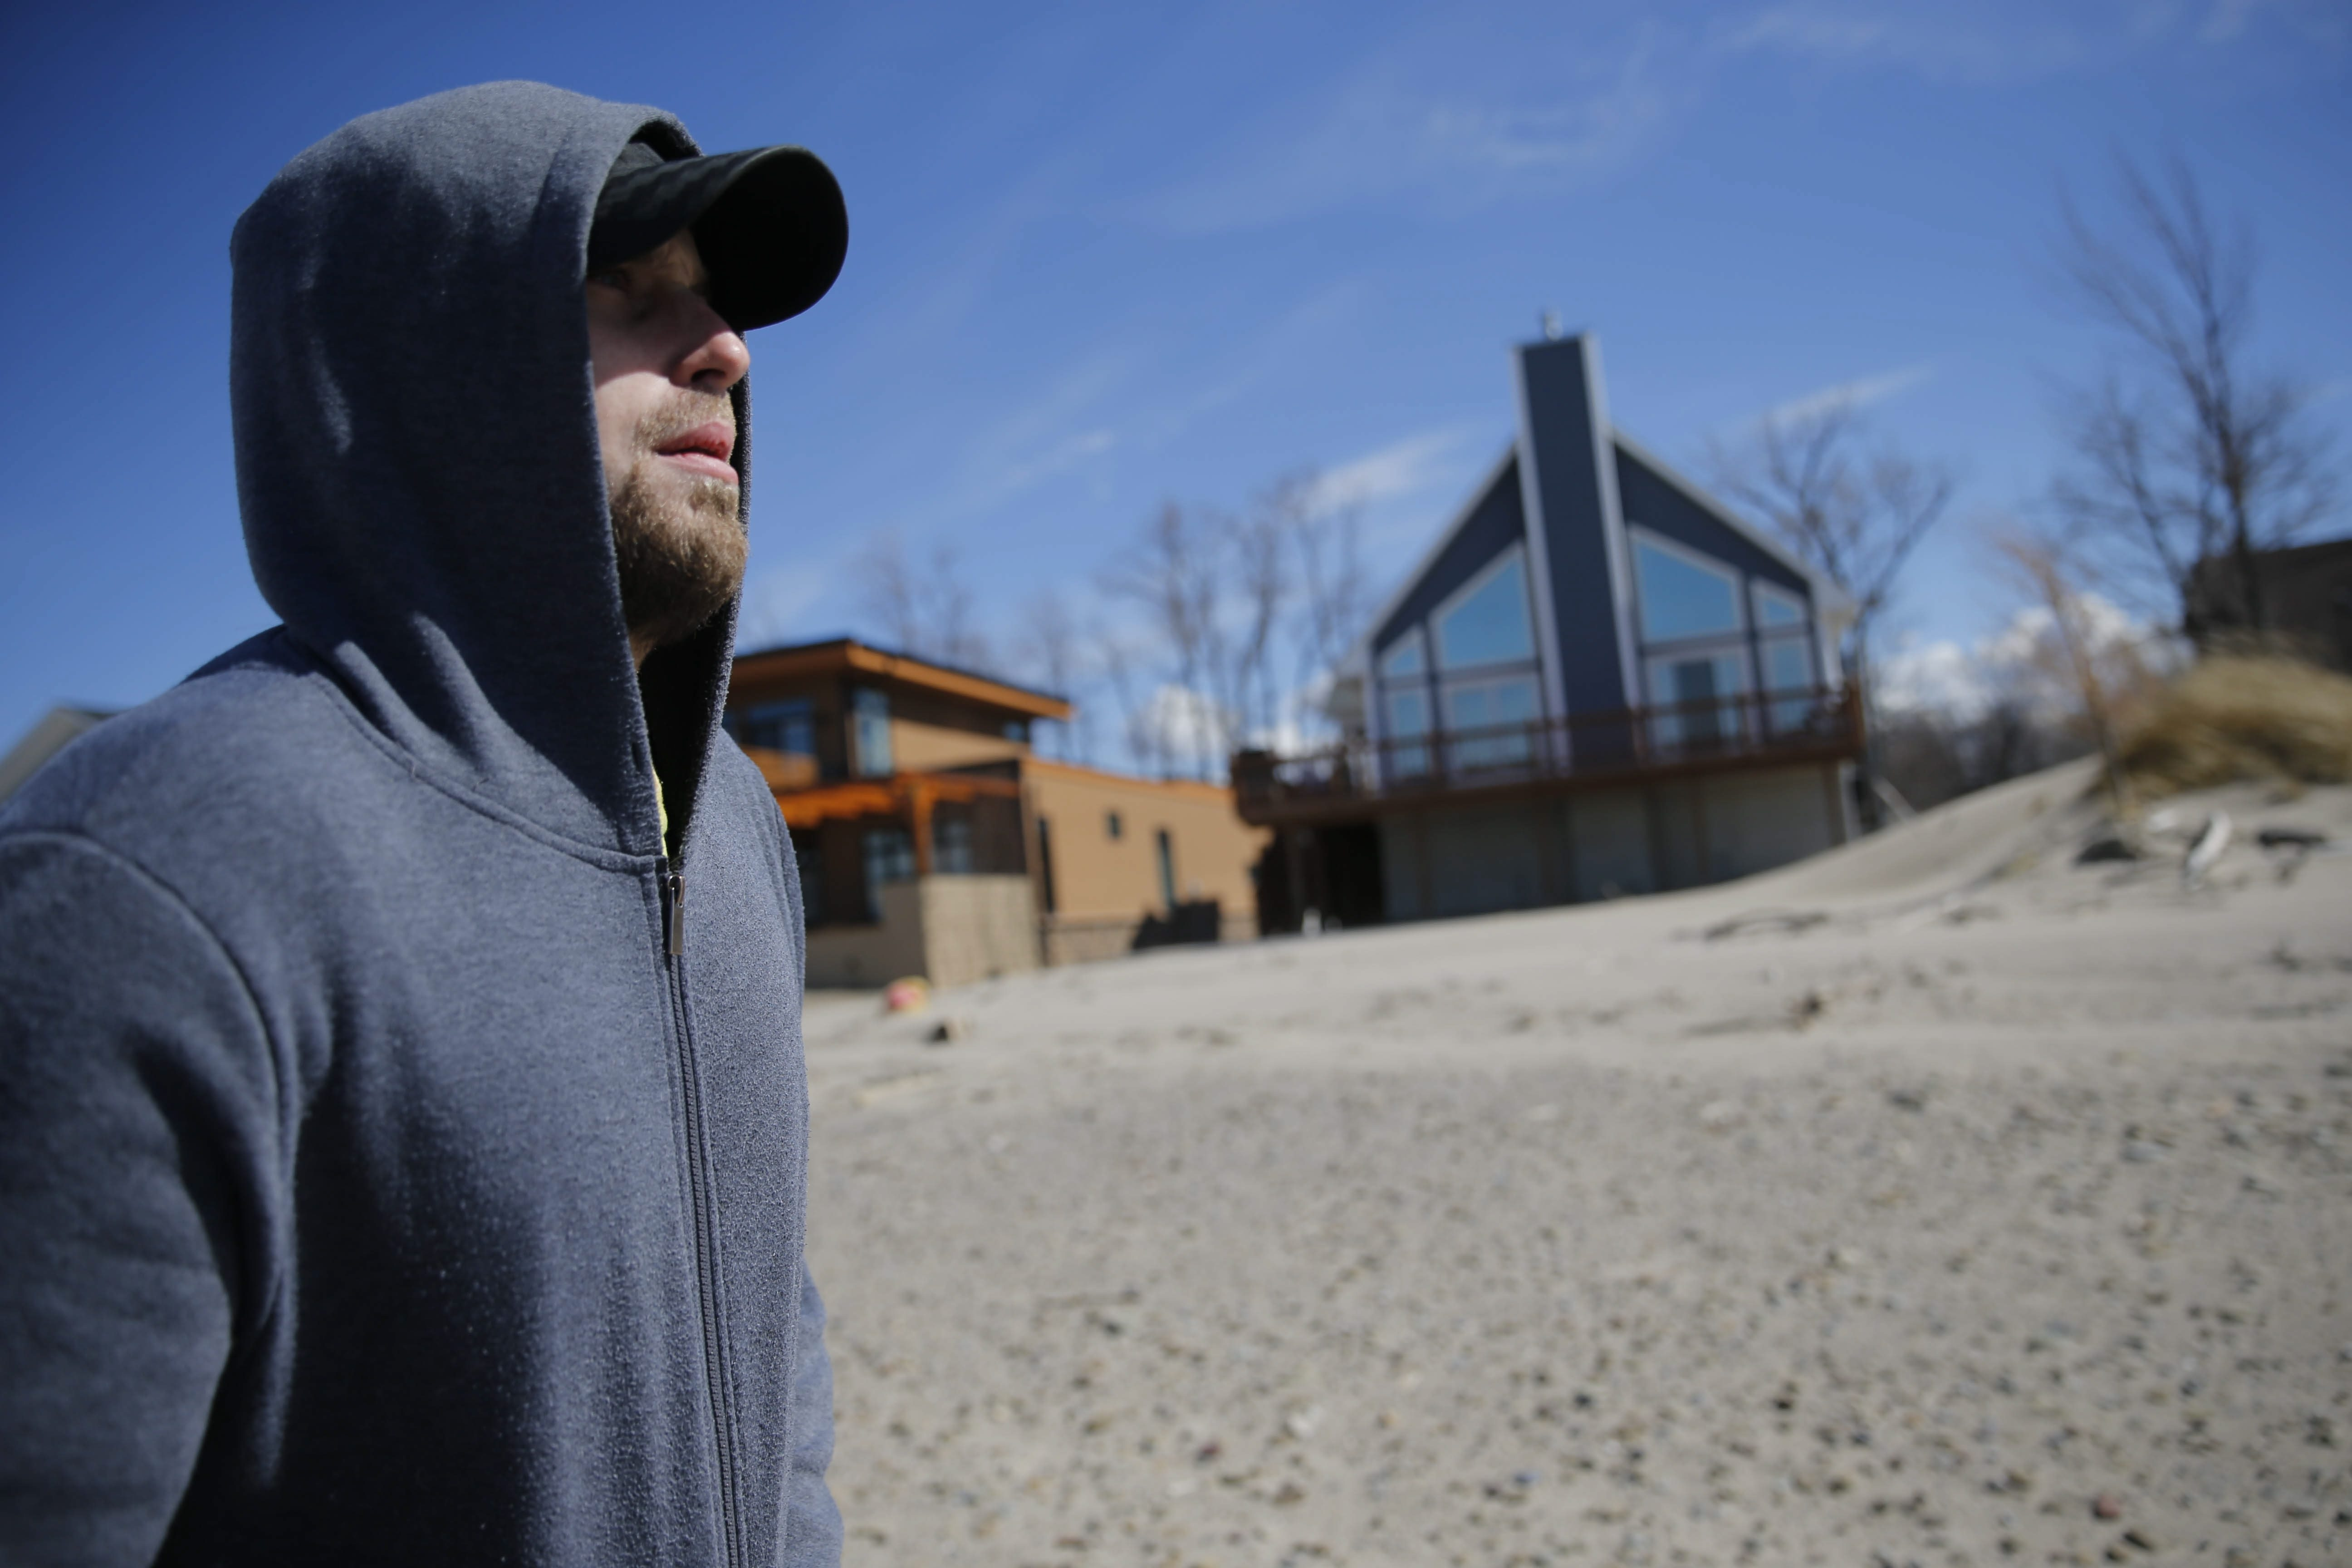 Adam O'Connor walks near State. Sen. Marc C. Panepinto's Sunset Bay beach house, where he used to be a tenant. He says he was evicted after reporting a loud party with underage drinking to law enforcement.